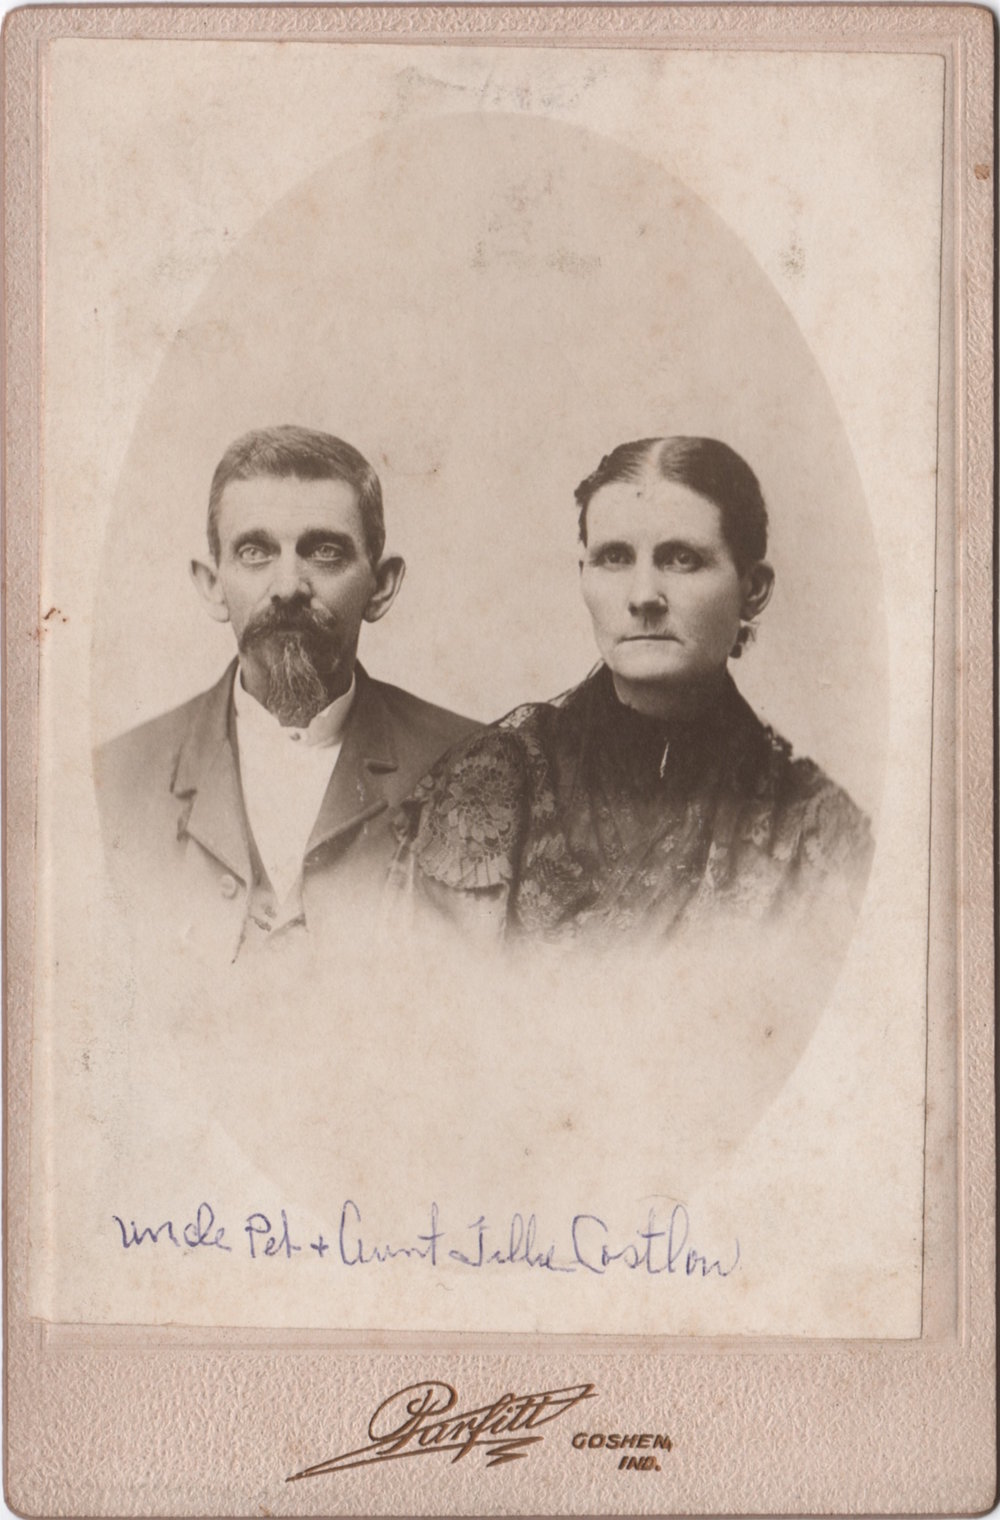 Peter Costlow (1846-1905) and Matilda Topper Costlow (1850-1935)